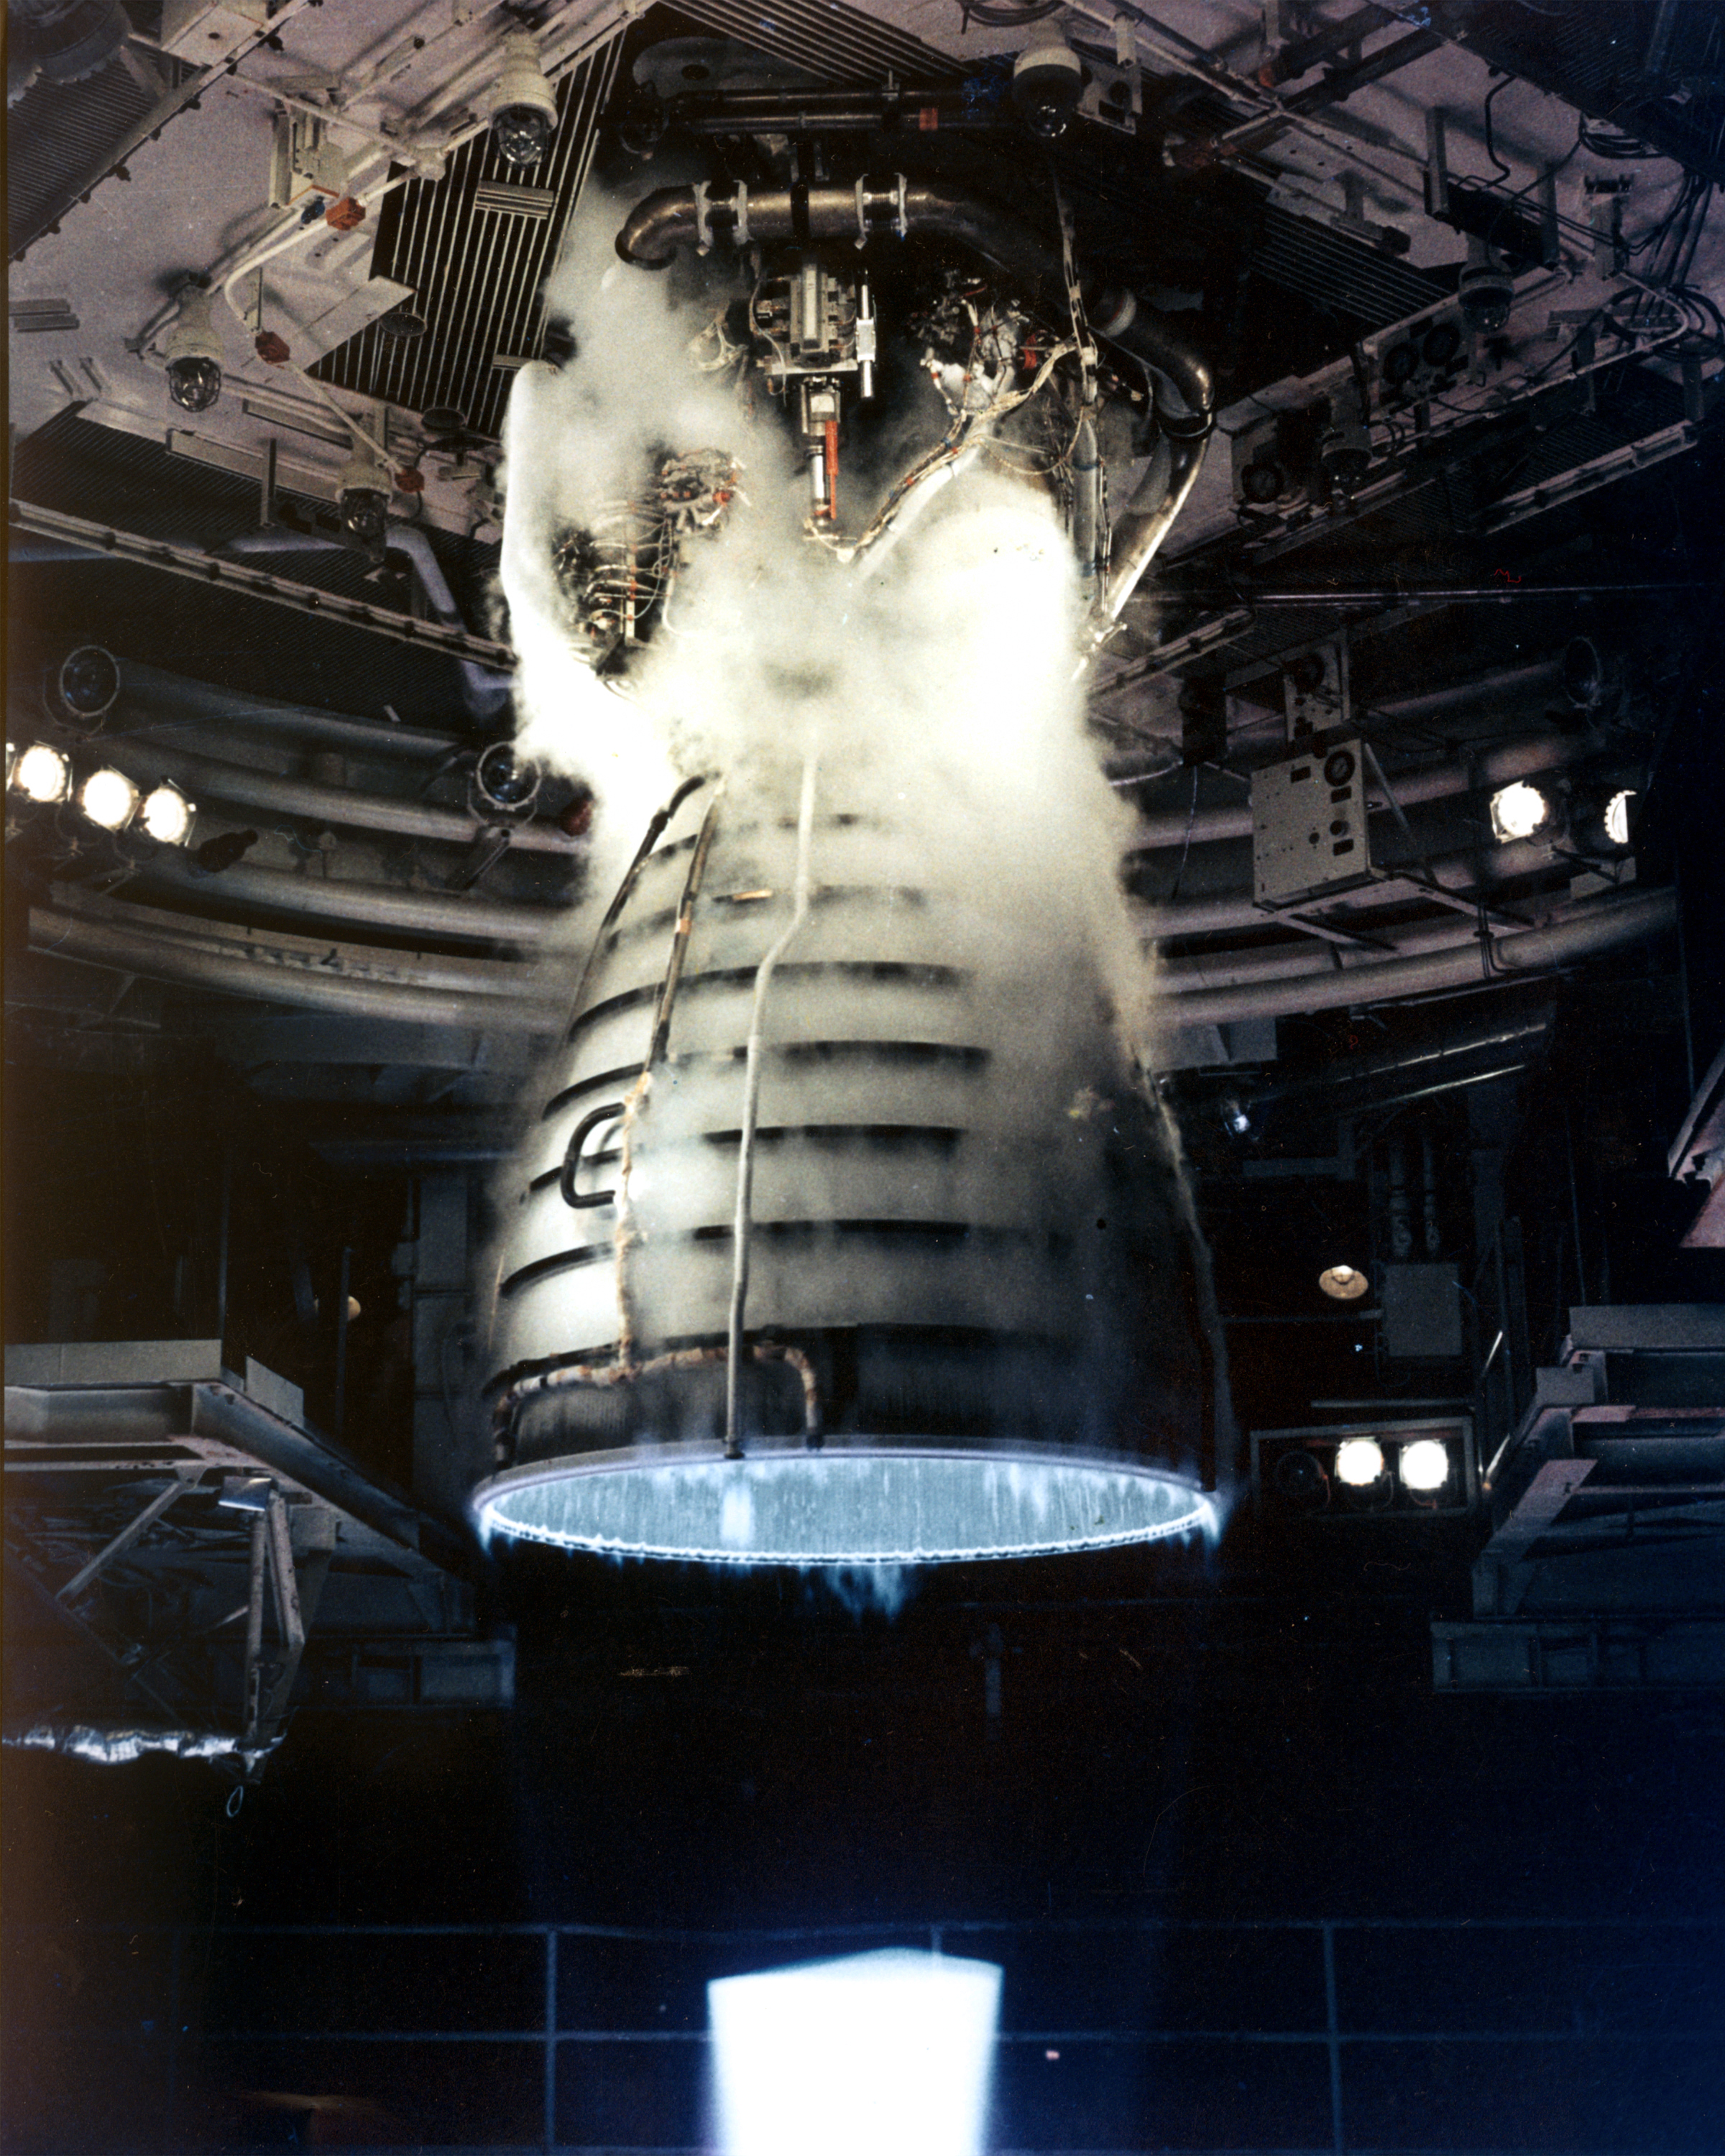 https://upload.wikimedia.org/wikipedia/commons/b/b1/Shuttle_Main_Engine_Test_Firing.jpg